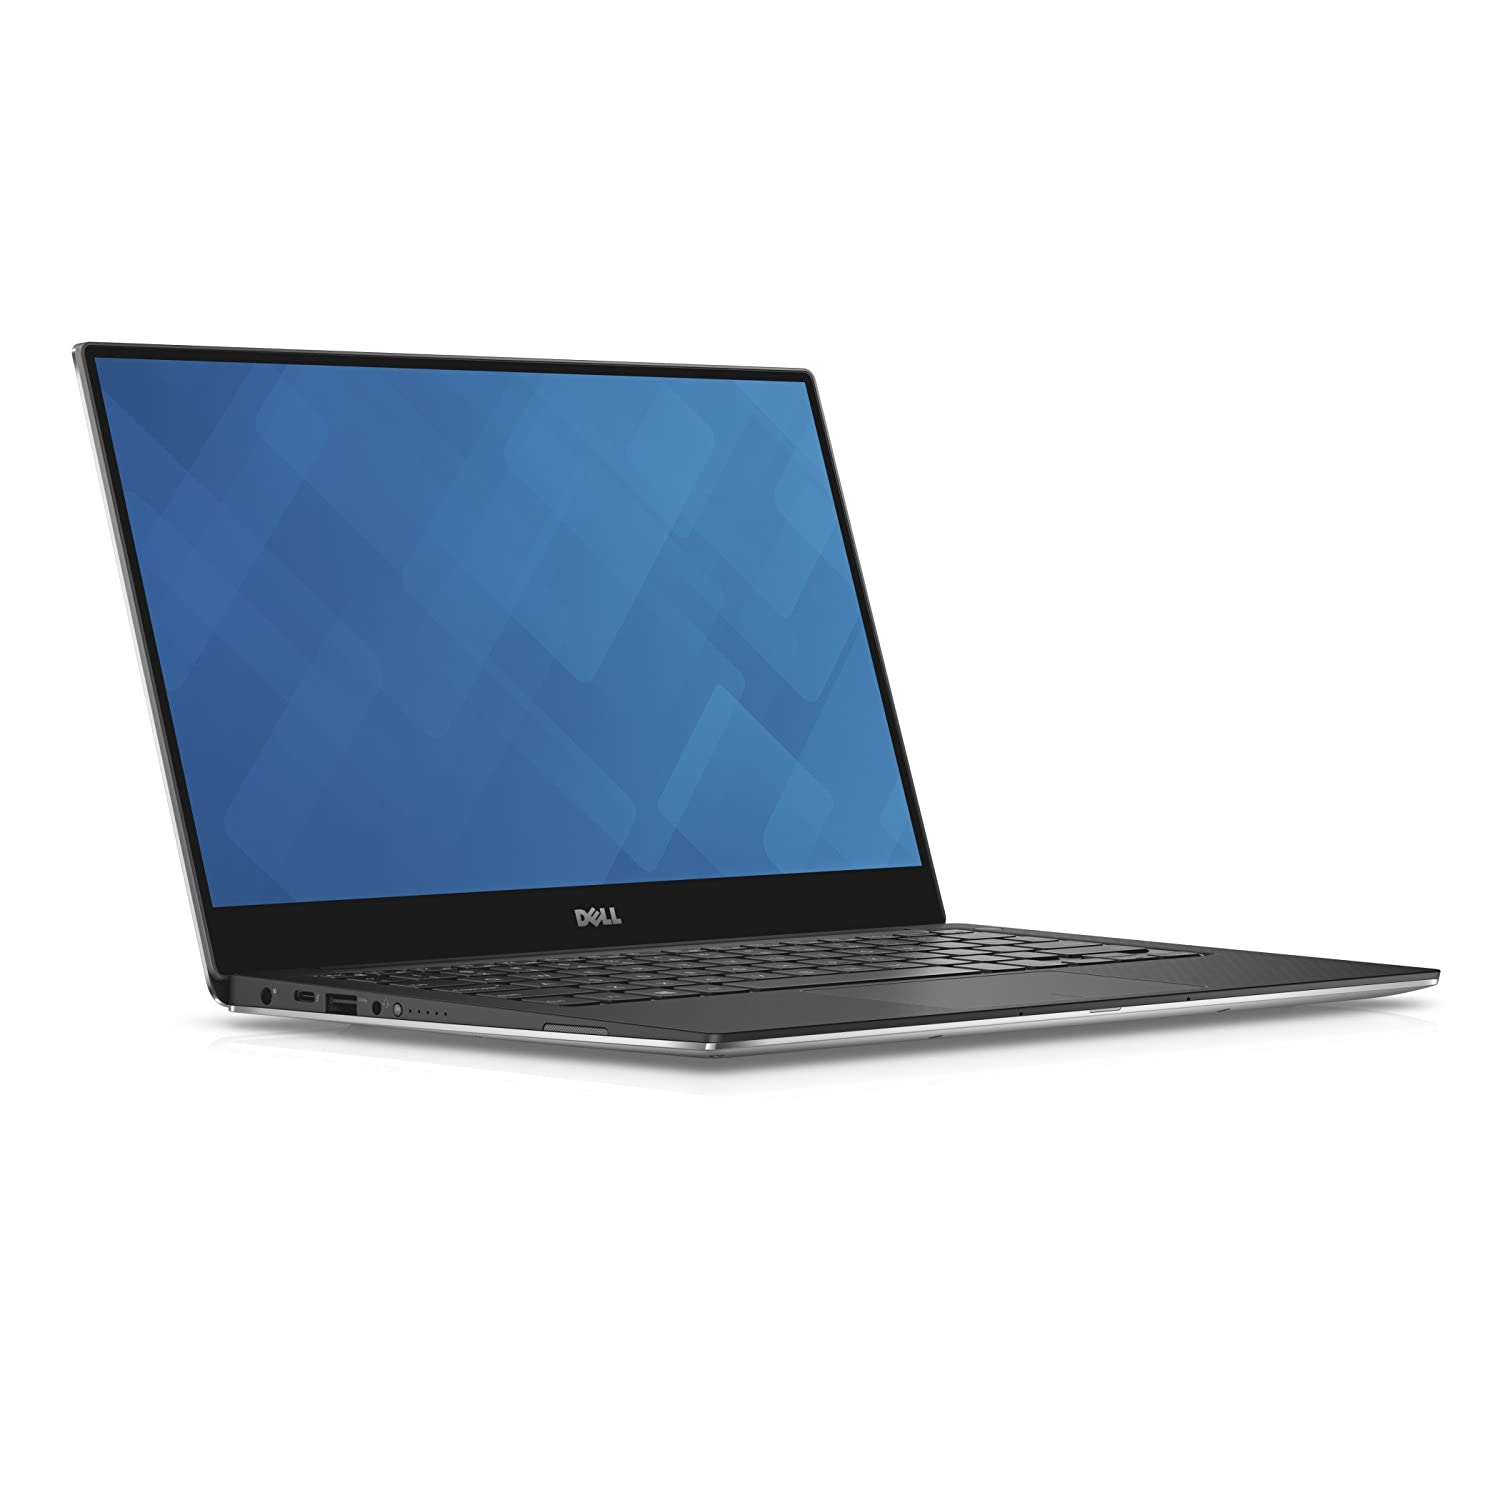 Amazon.com: Dell XPS 13 9360 13.3